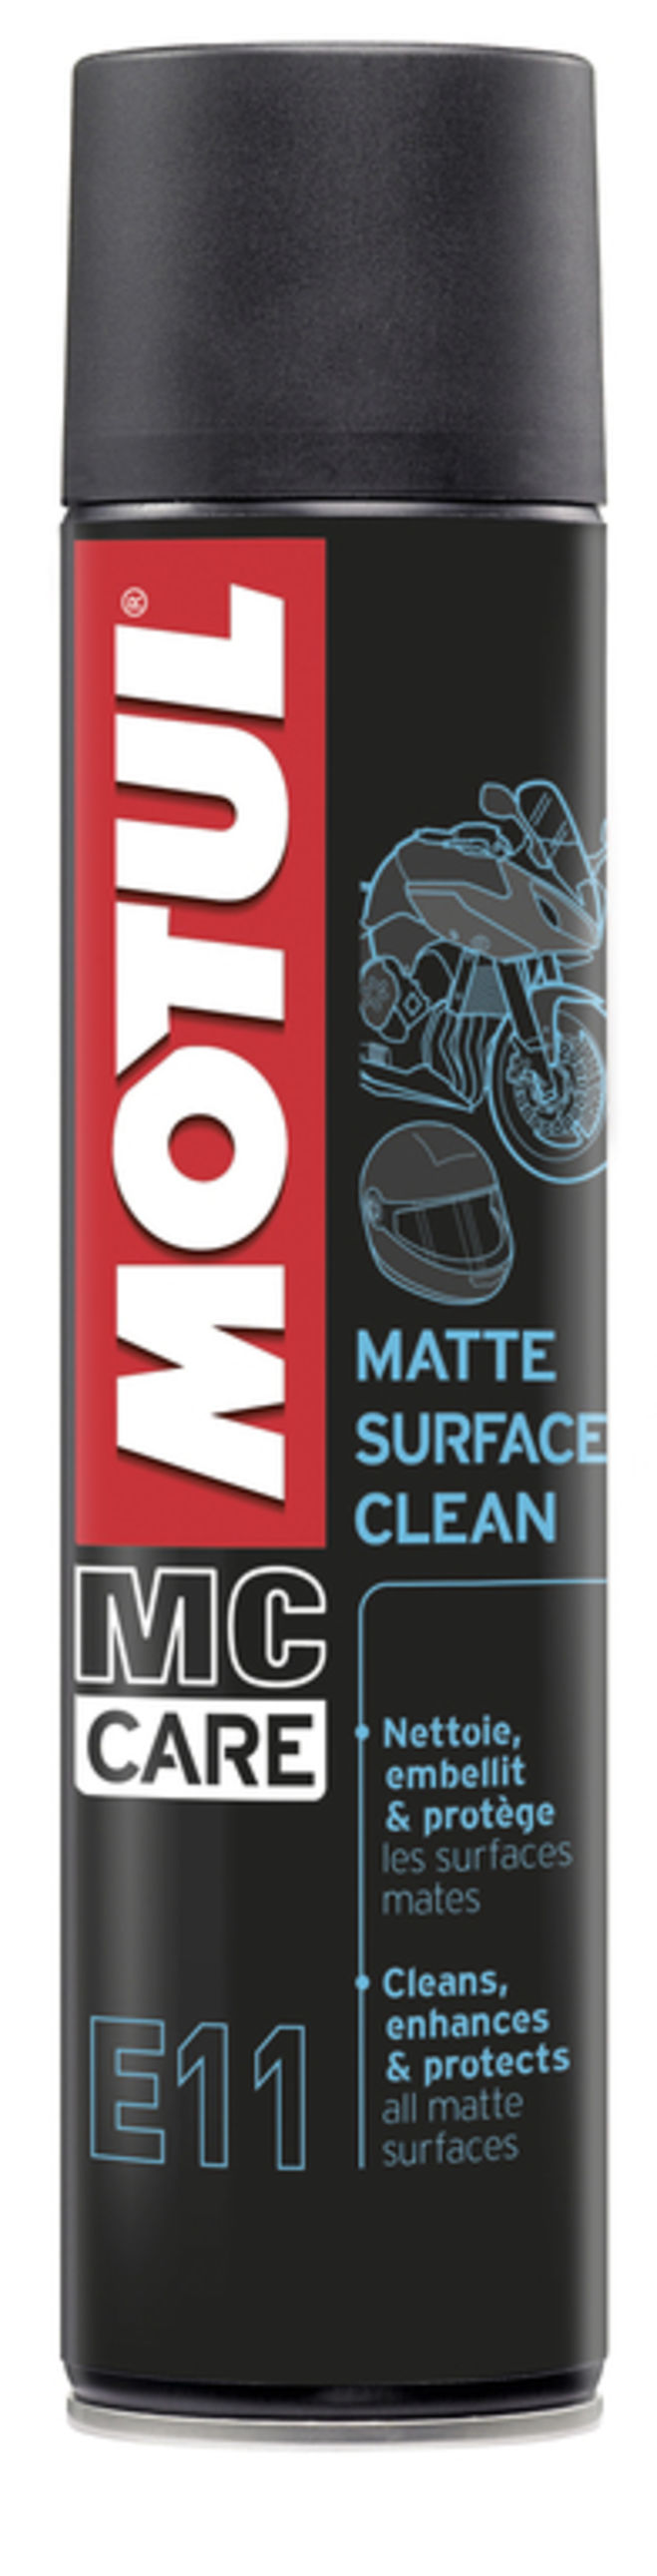 E11 Matte Surface Clean 0,4л